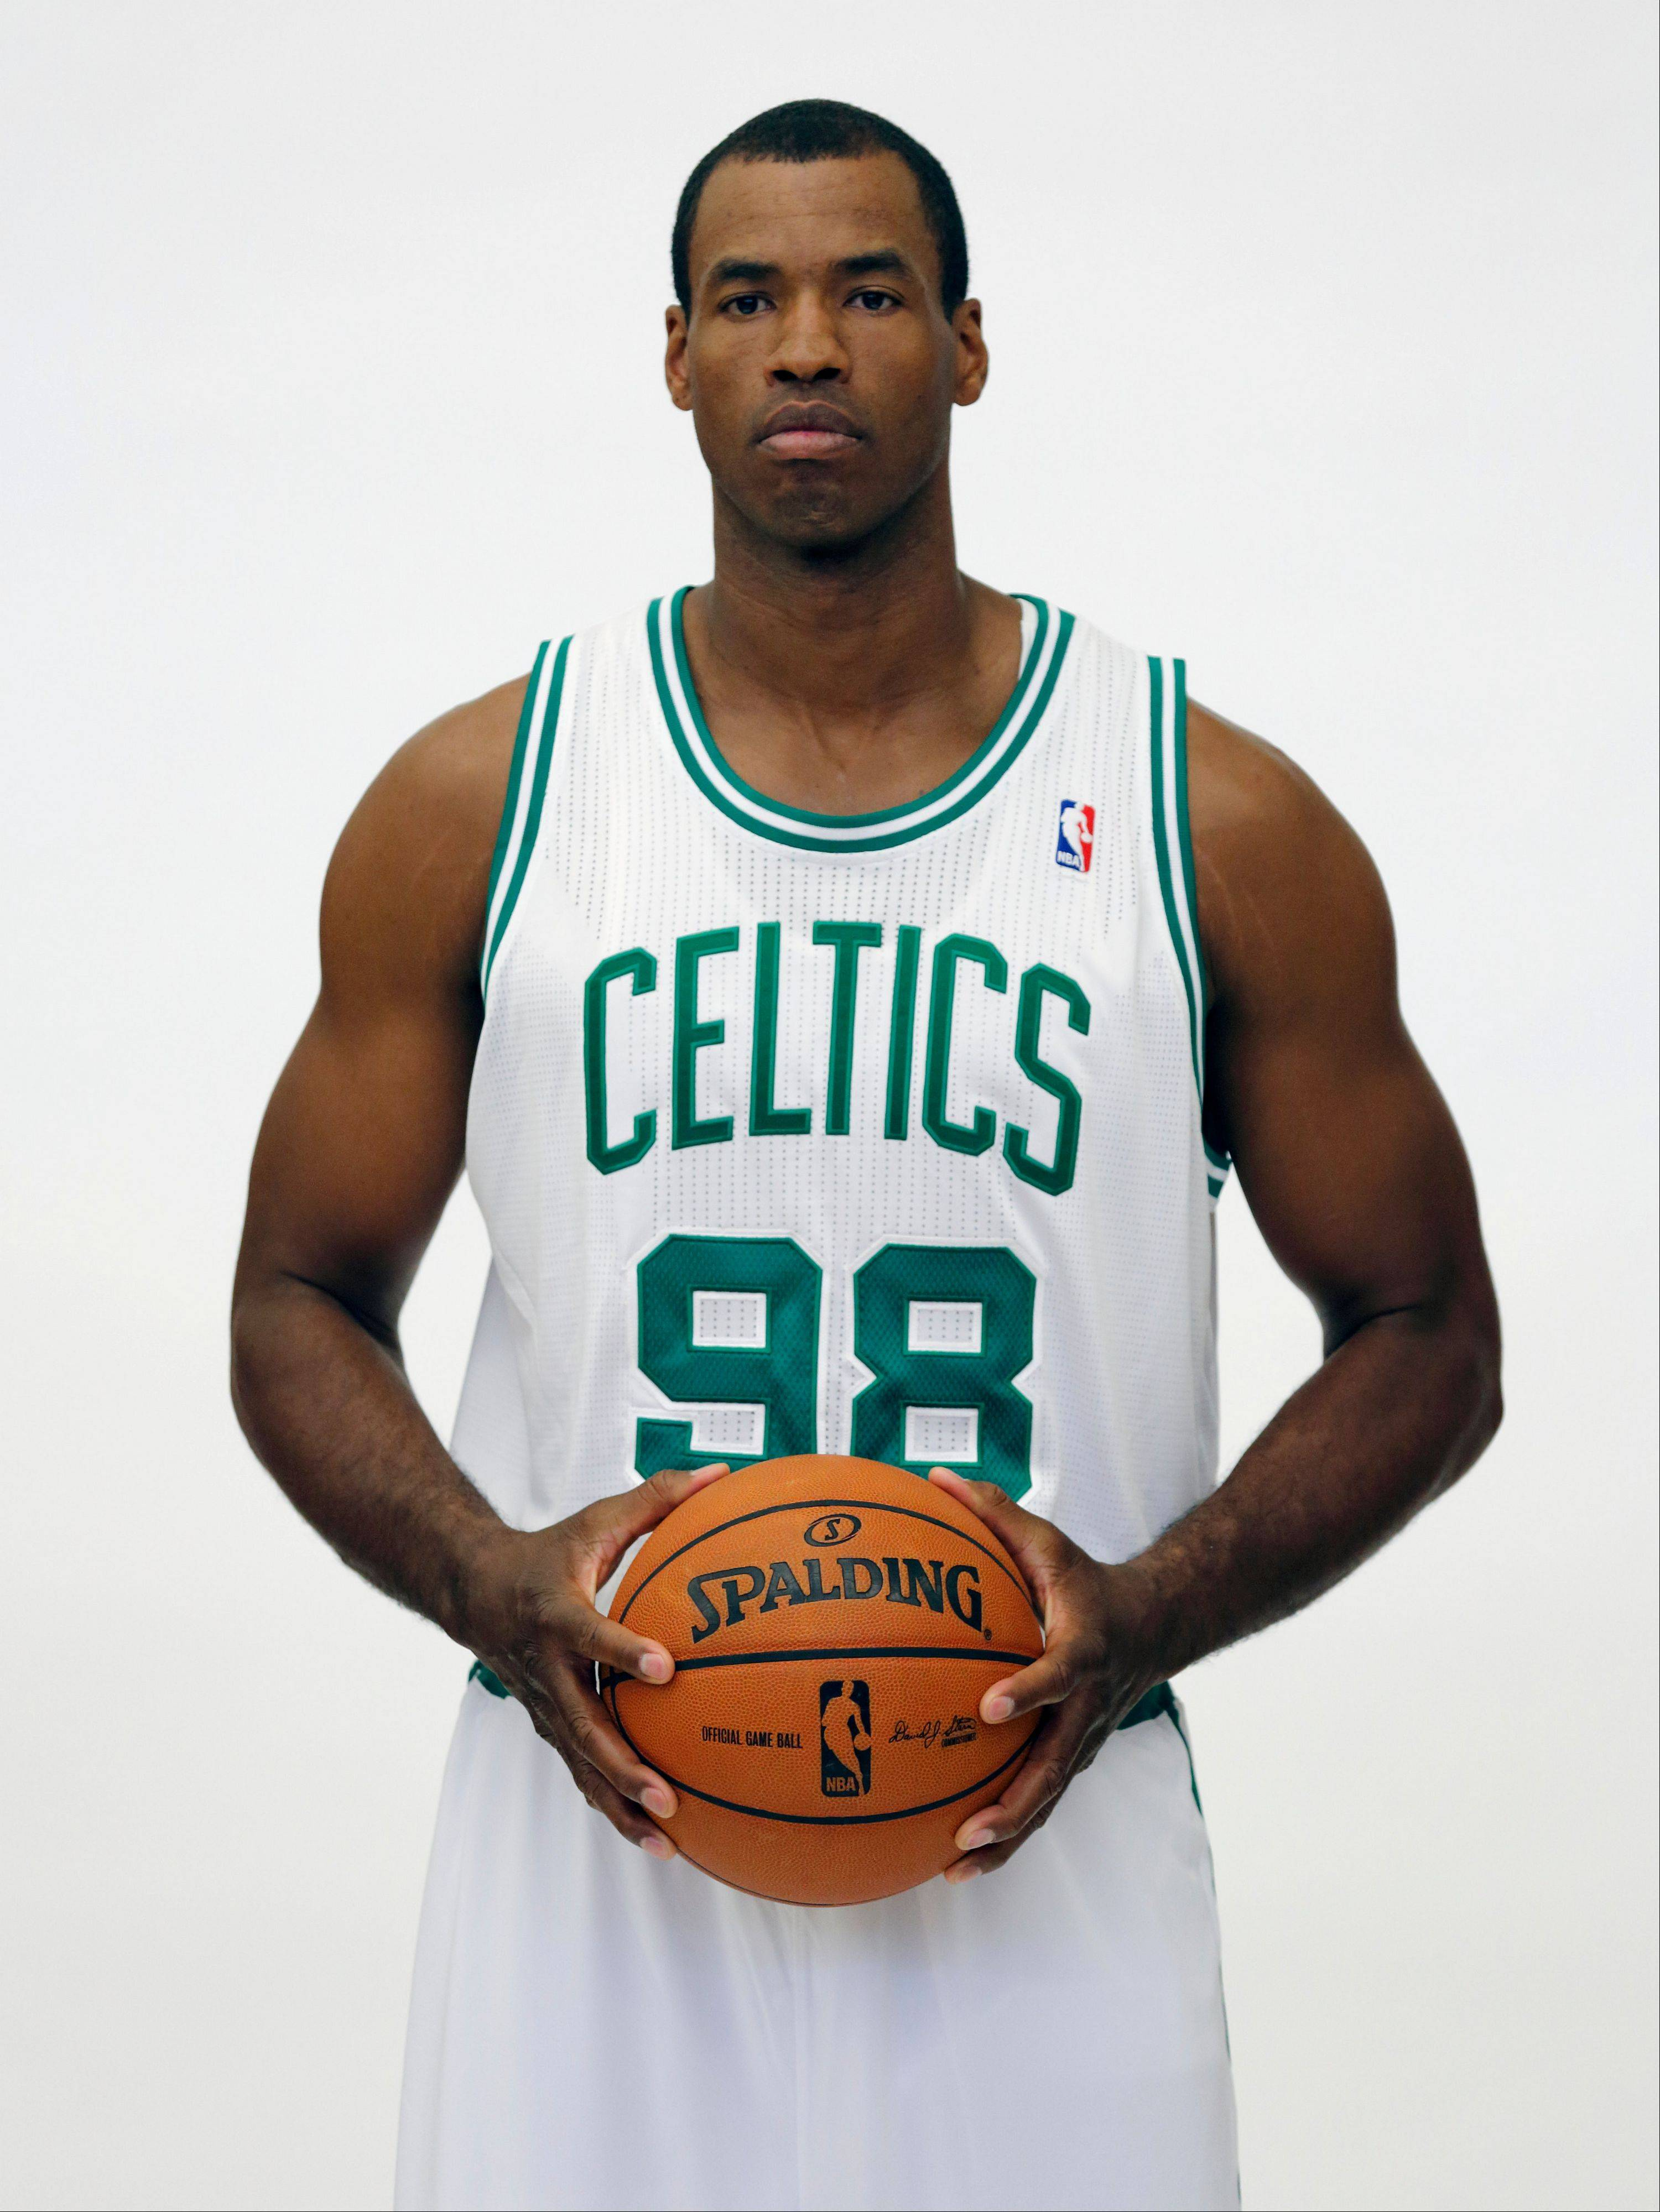 The Boston Celtics' Jason Collins has become the first male professional athlete in the major four American sports leagues to come out as gay.